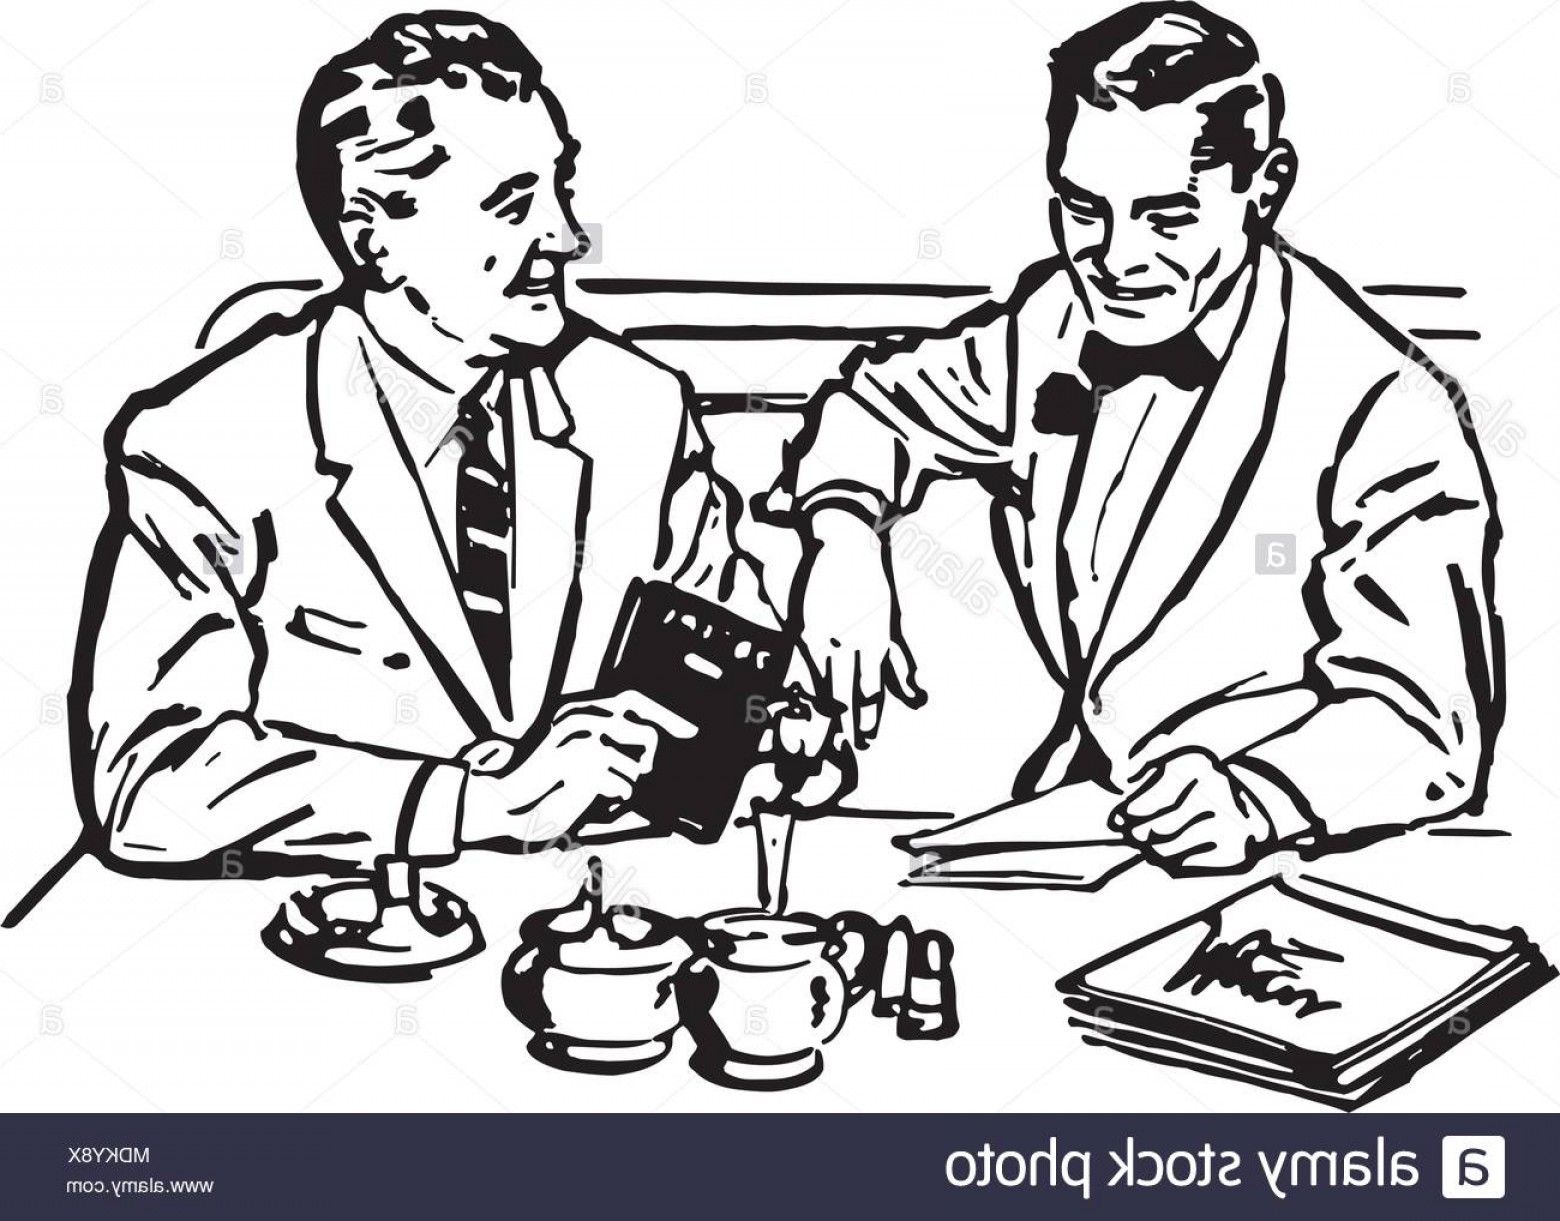 Business Lunch Clip Art Vector: Business Lunch Retro Clipart Illustration Image